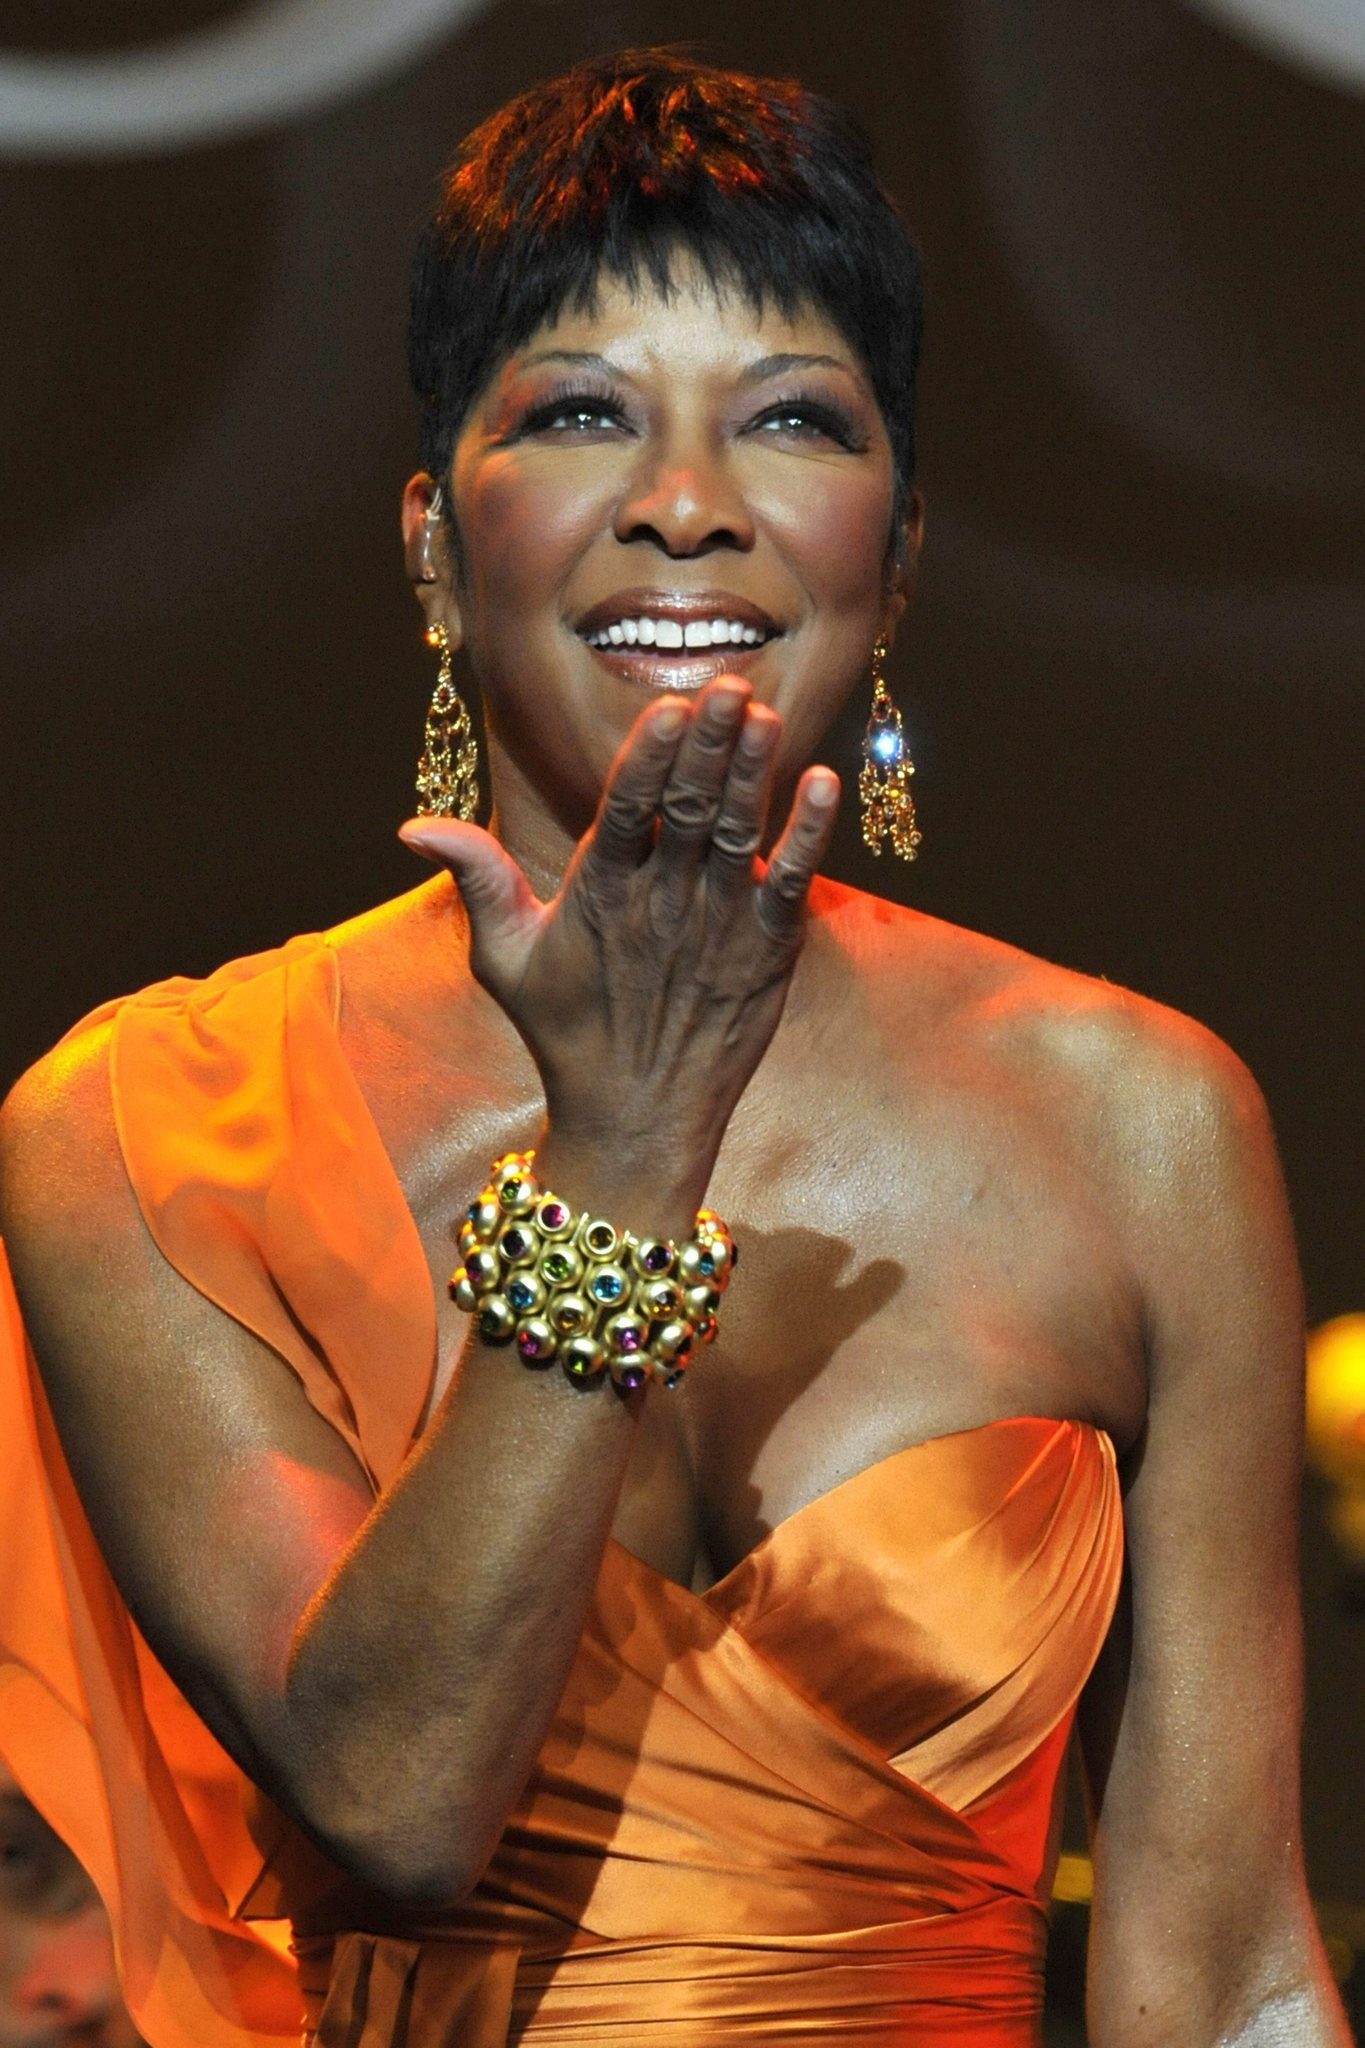 Natalie cole songs and lyrics